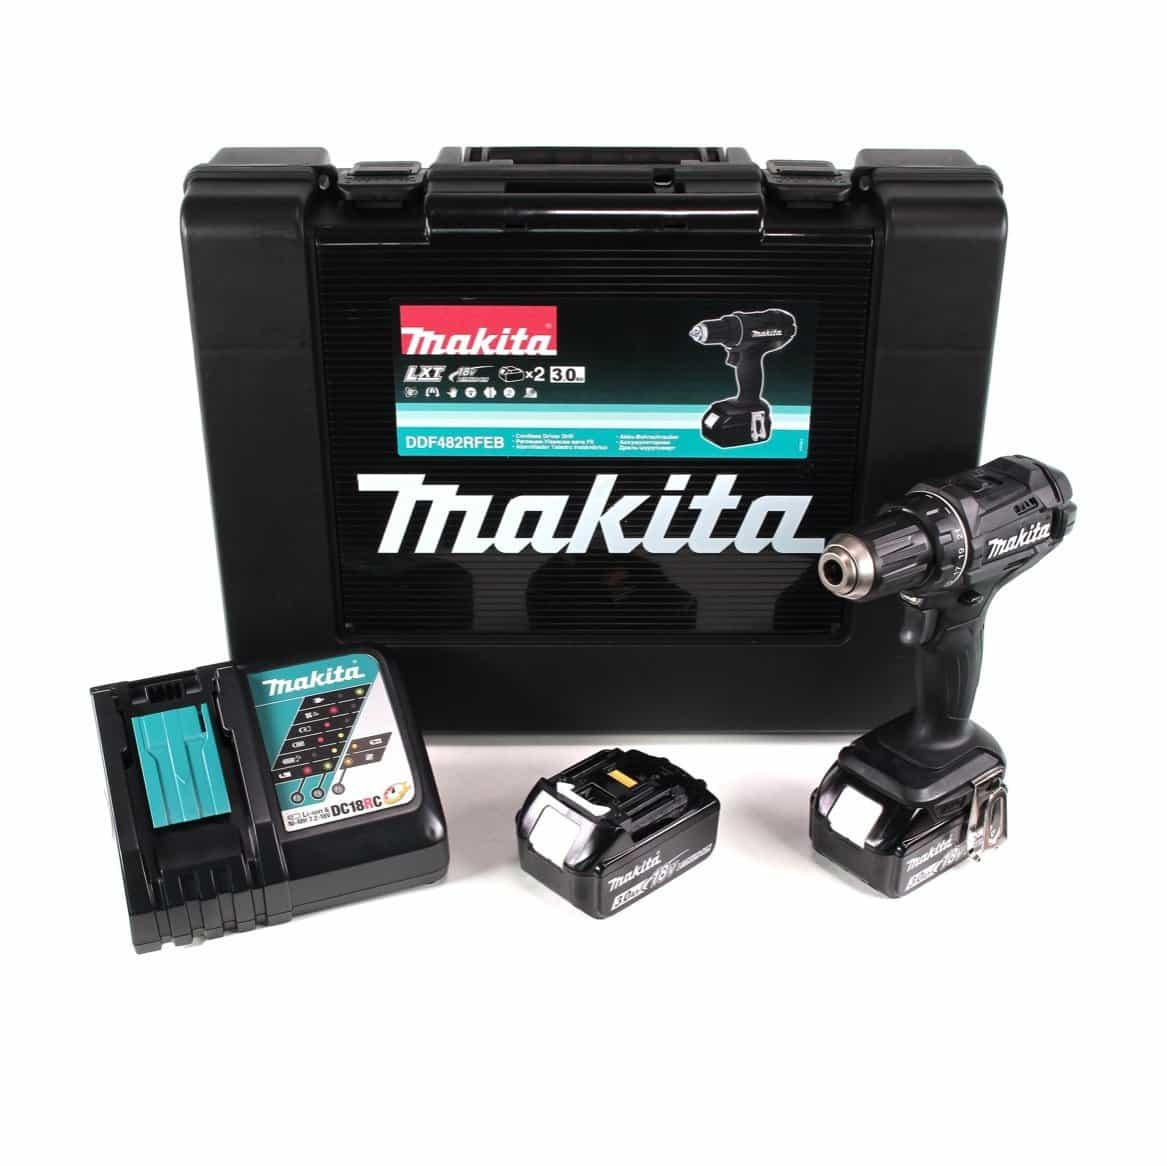 makita schwarz 18v 3 ah akku bohrschrauber ddf482rfeb. Black Bedroom Furniture Sets. Home Design Ideas